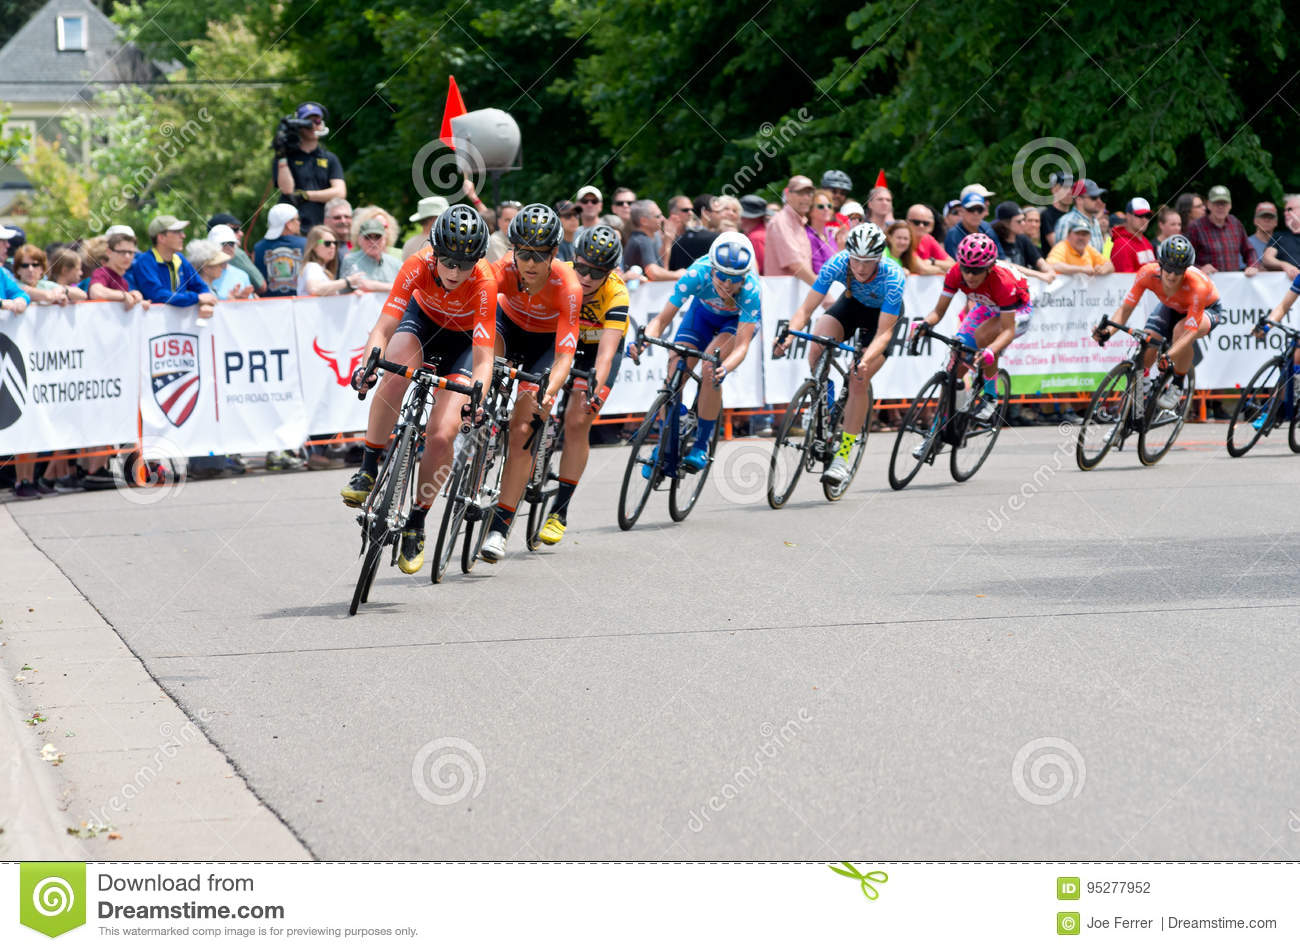 Peloton Chases Leaders at Stillwater